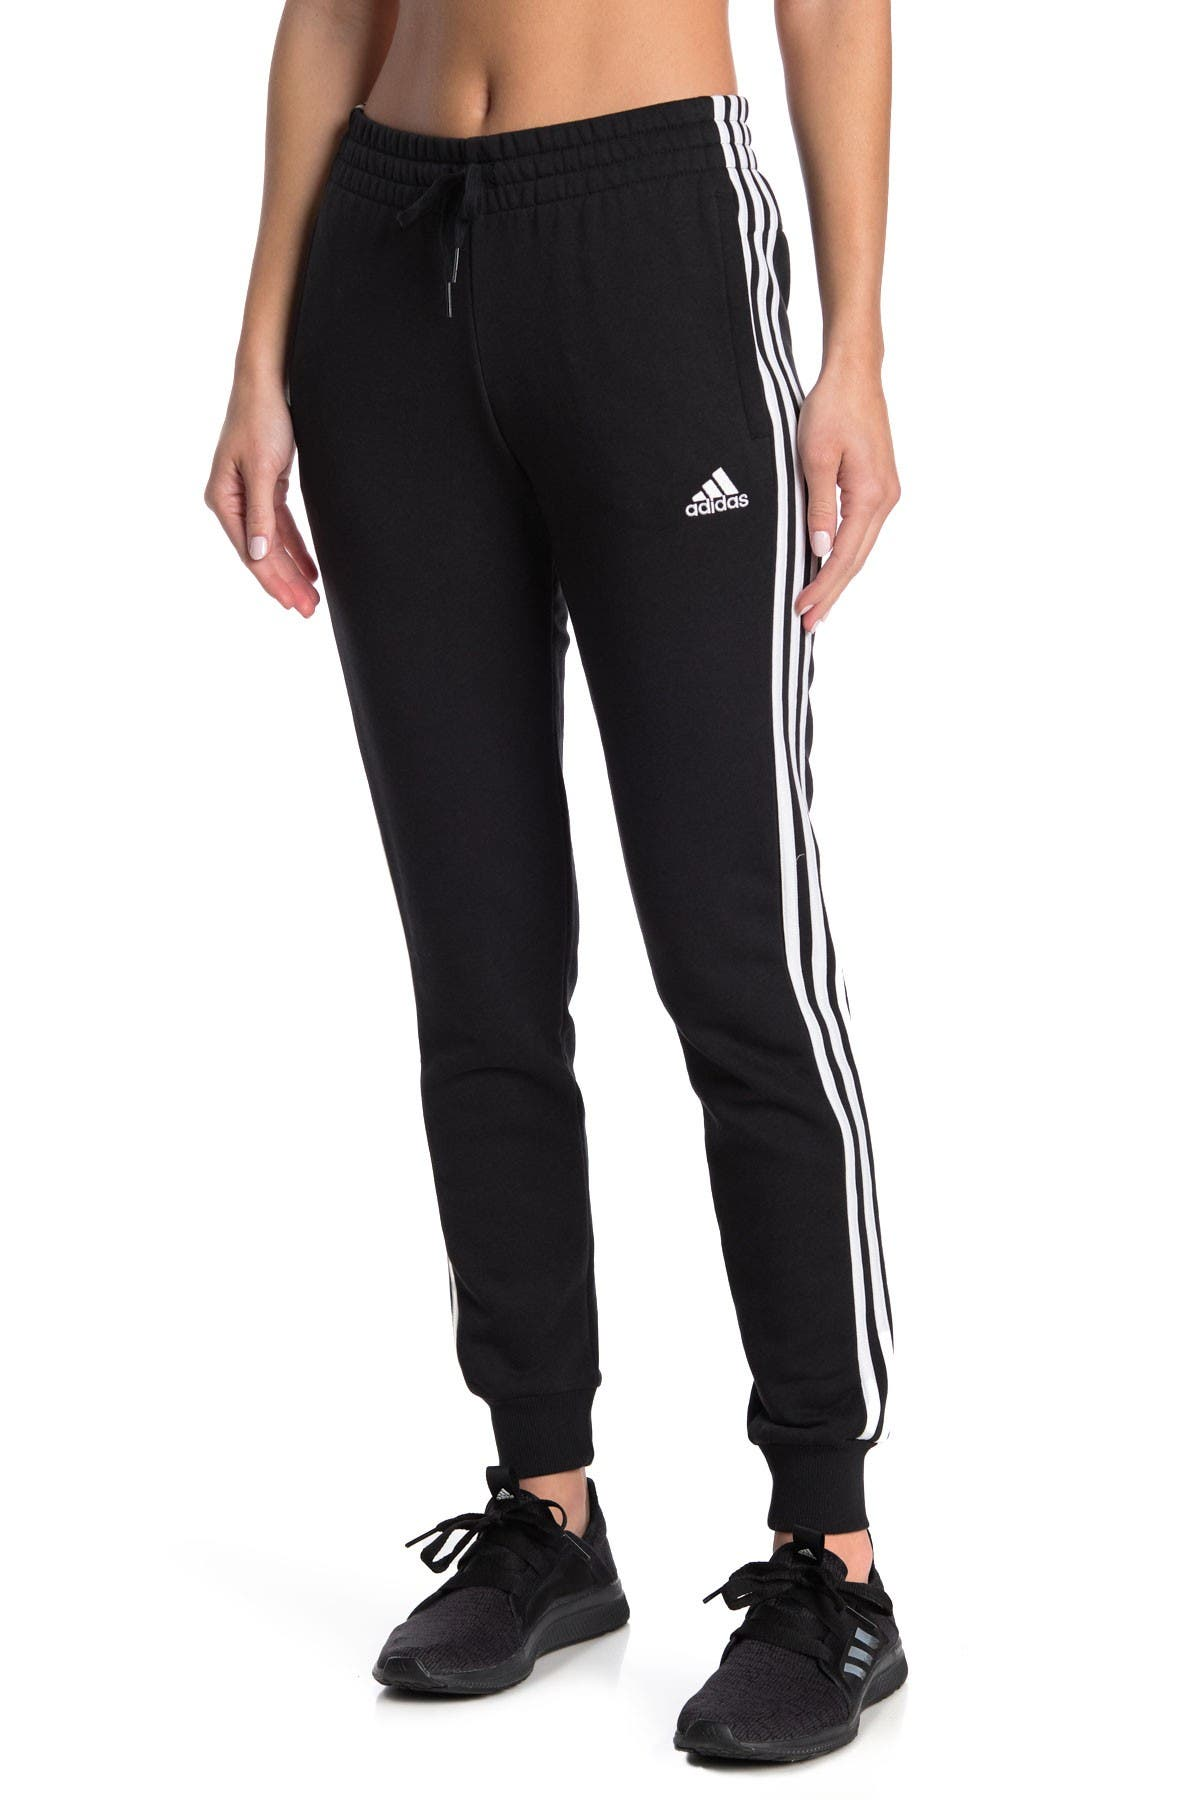 Image of adidas Essentials French Terry 3-Stripes Pants